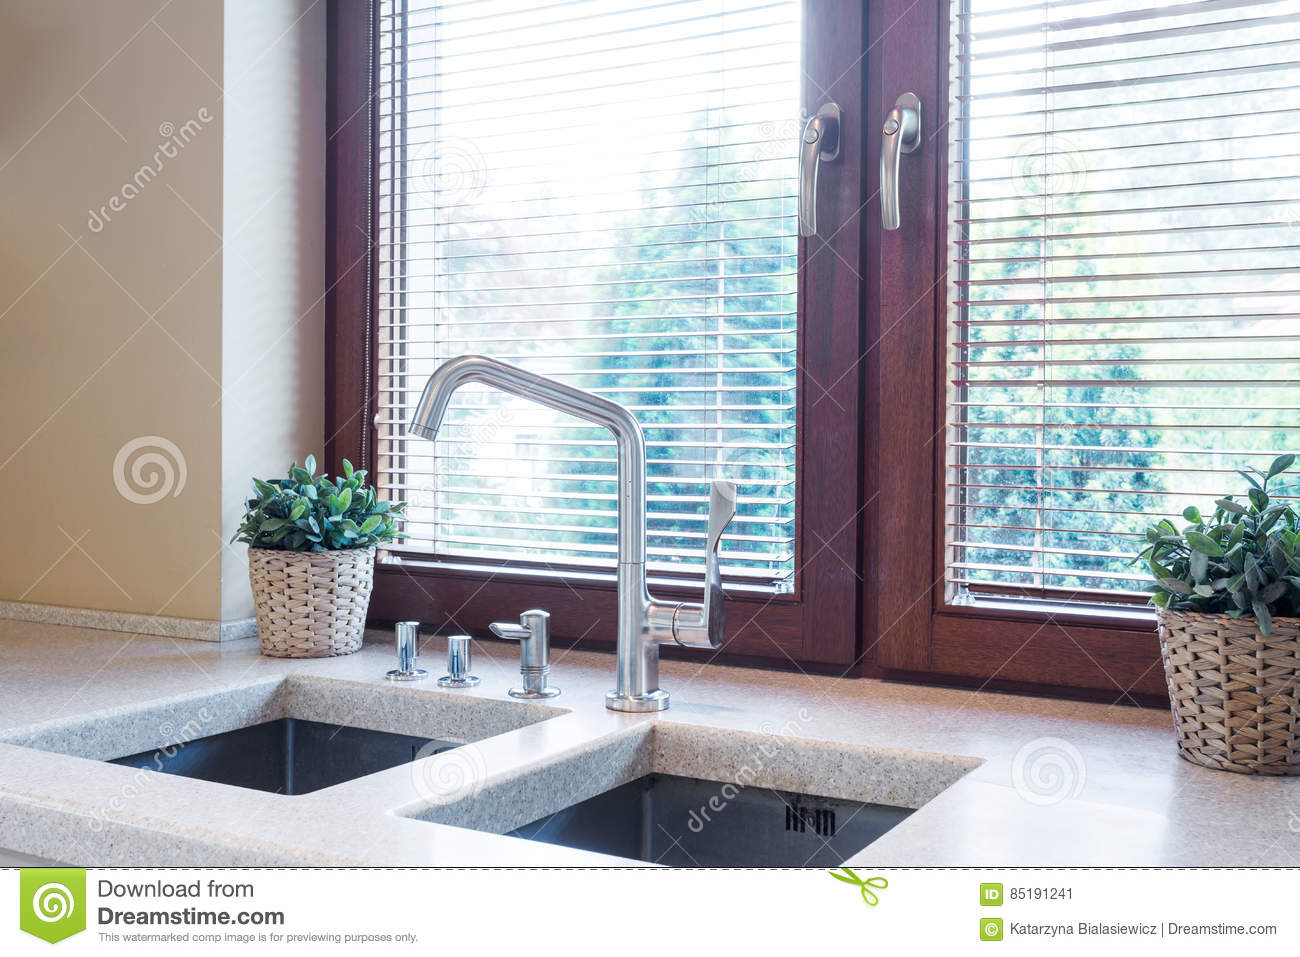 Kitchen Tabletop With Two Sinks Stock Image - Image of sink, well ...